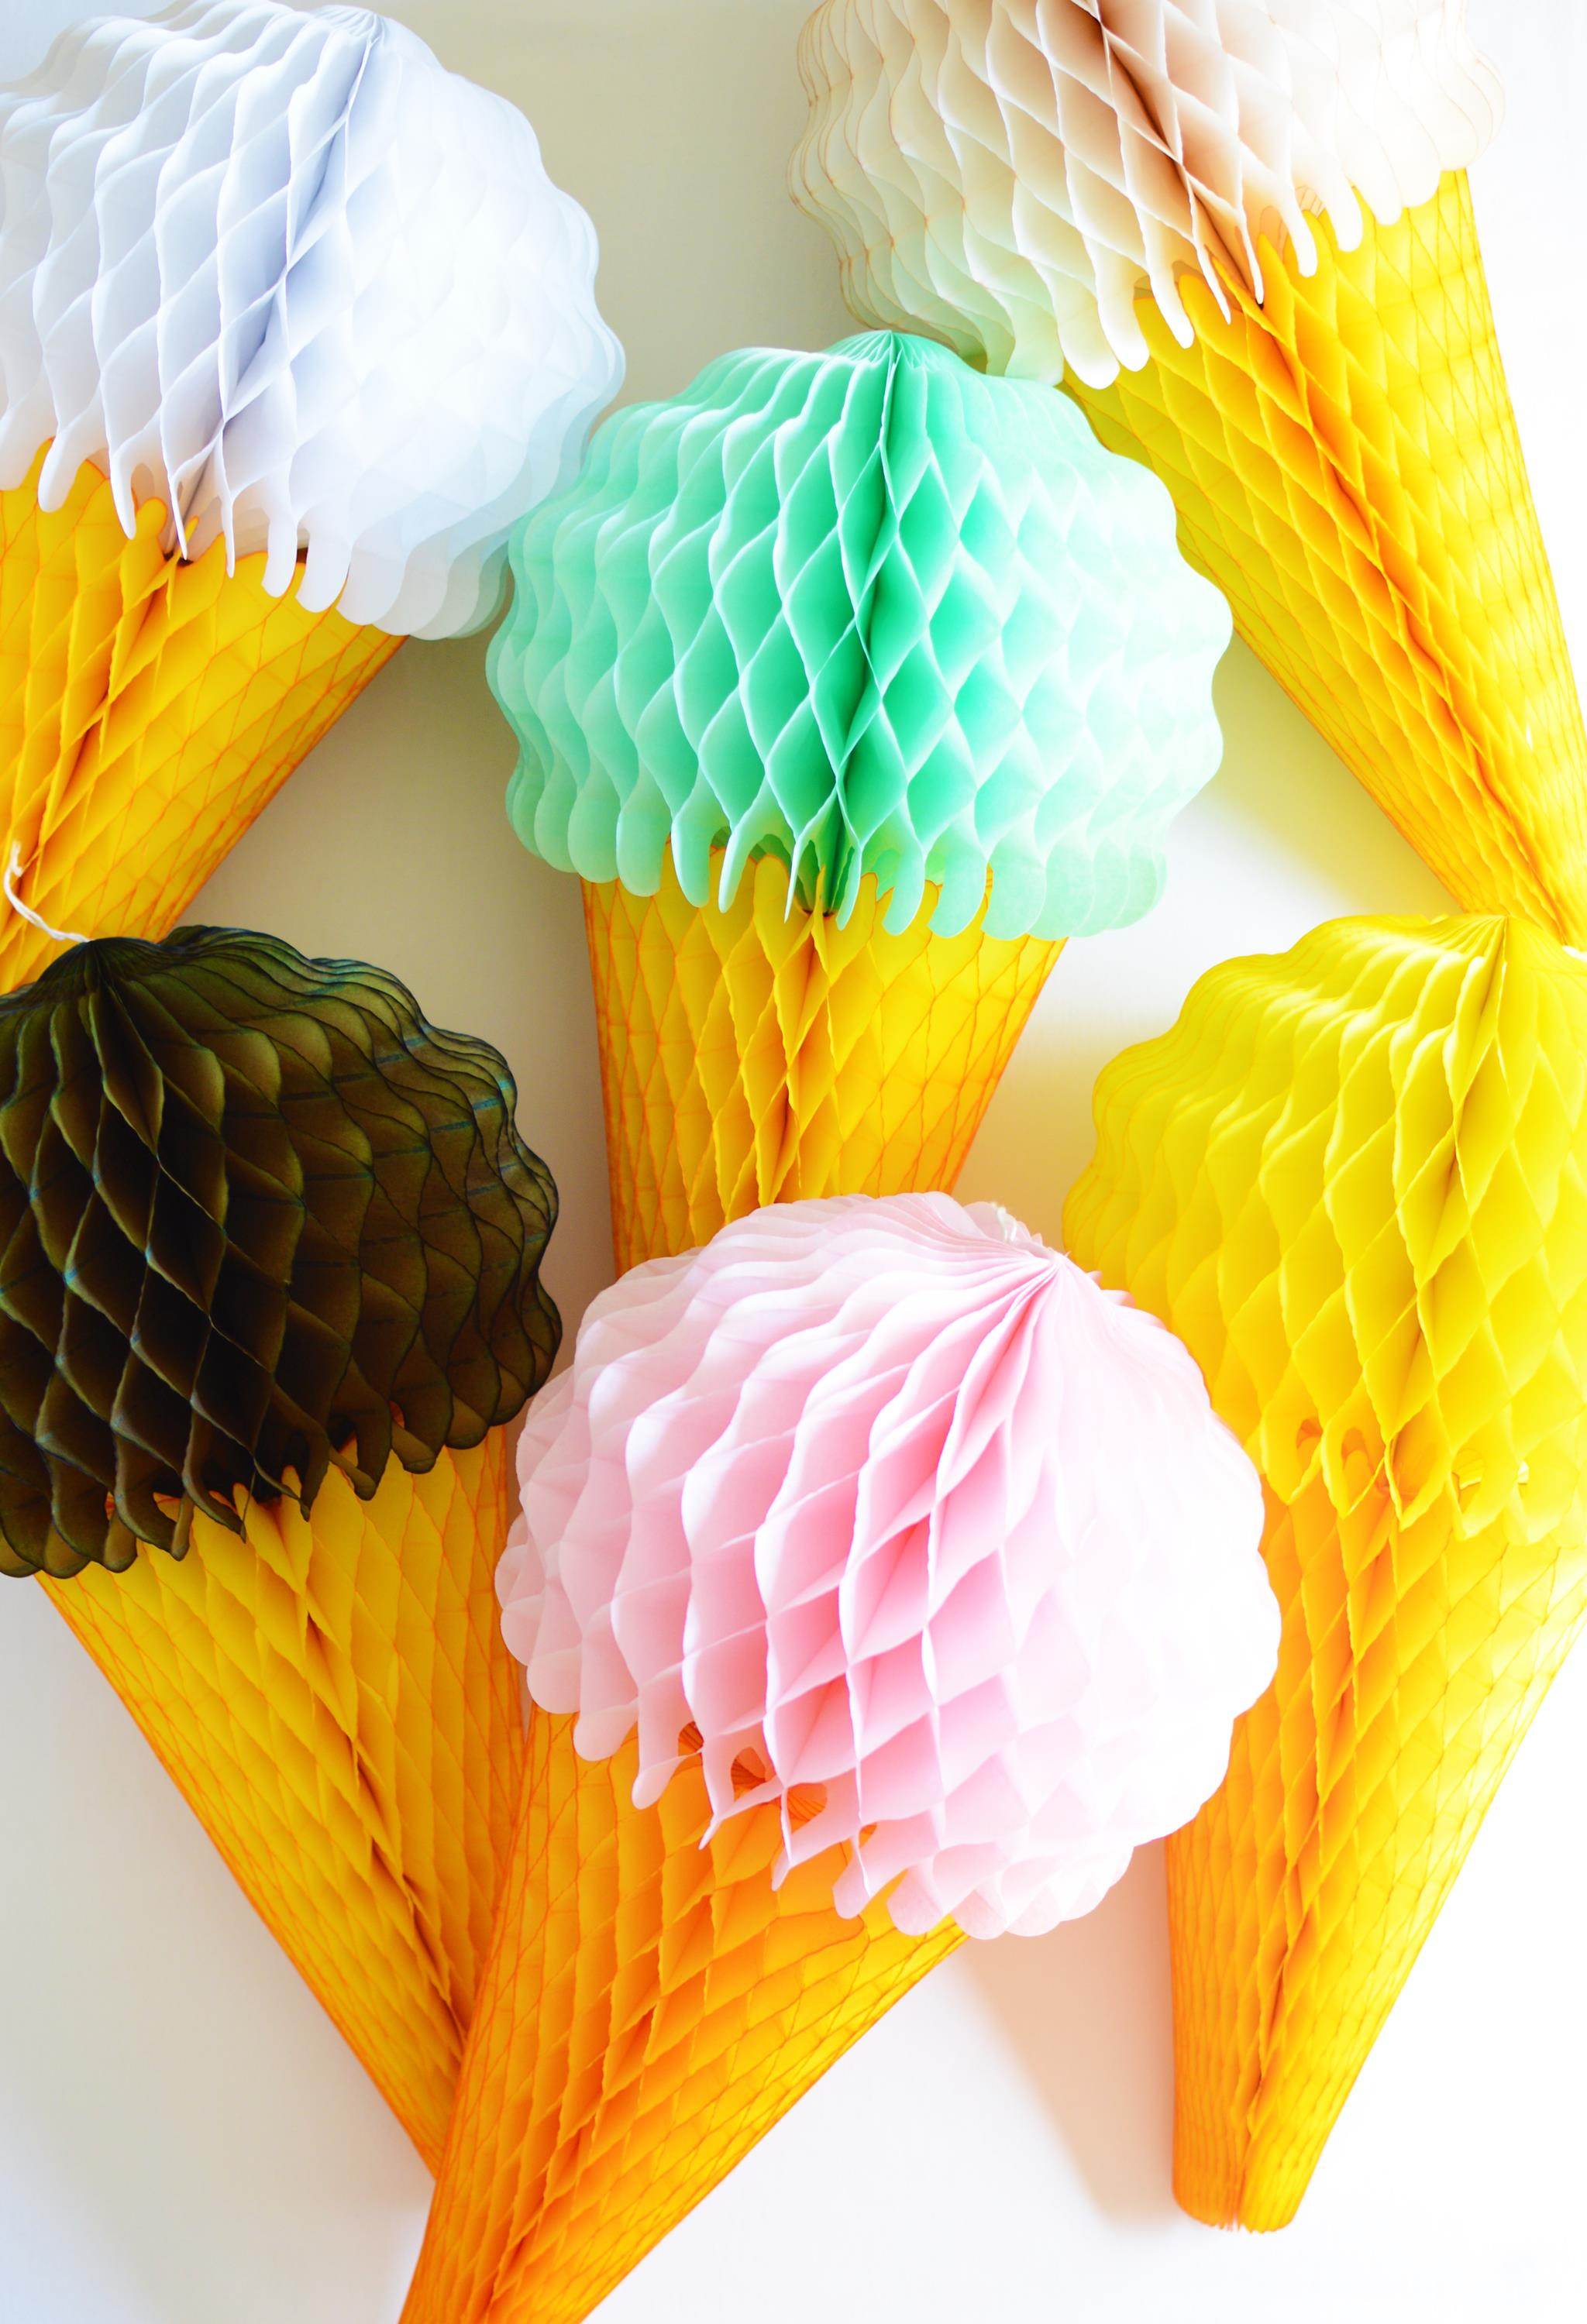 Honeycomb Tissue Paper Ice Cream Cones